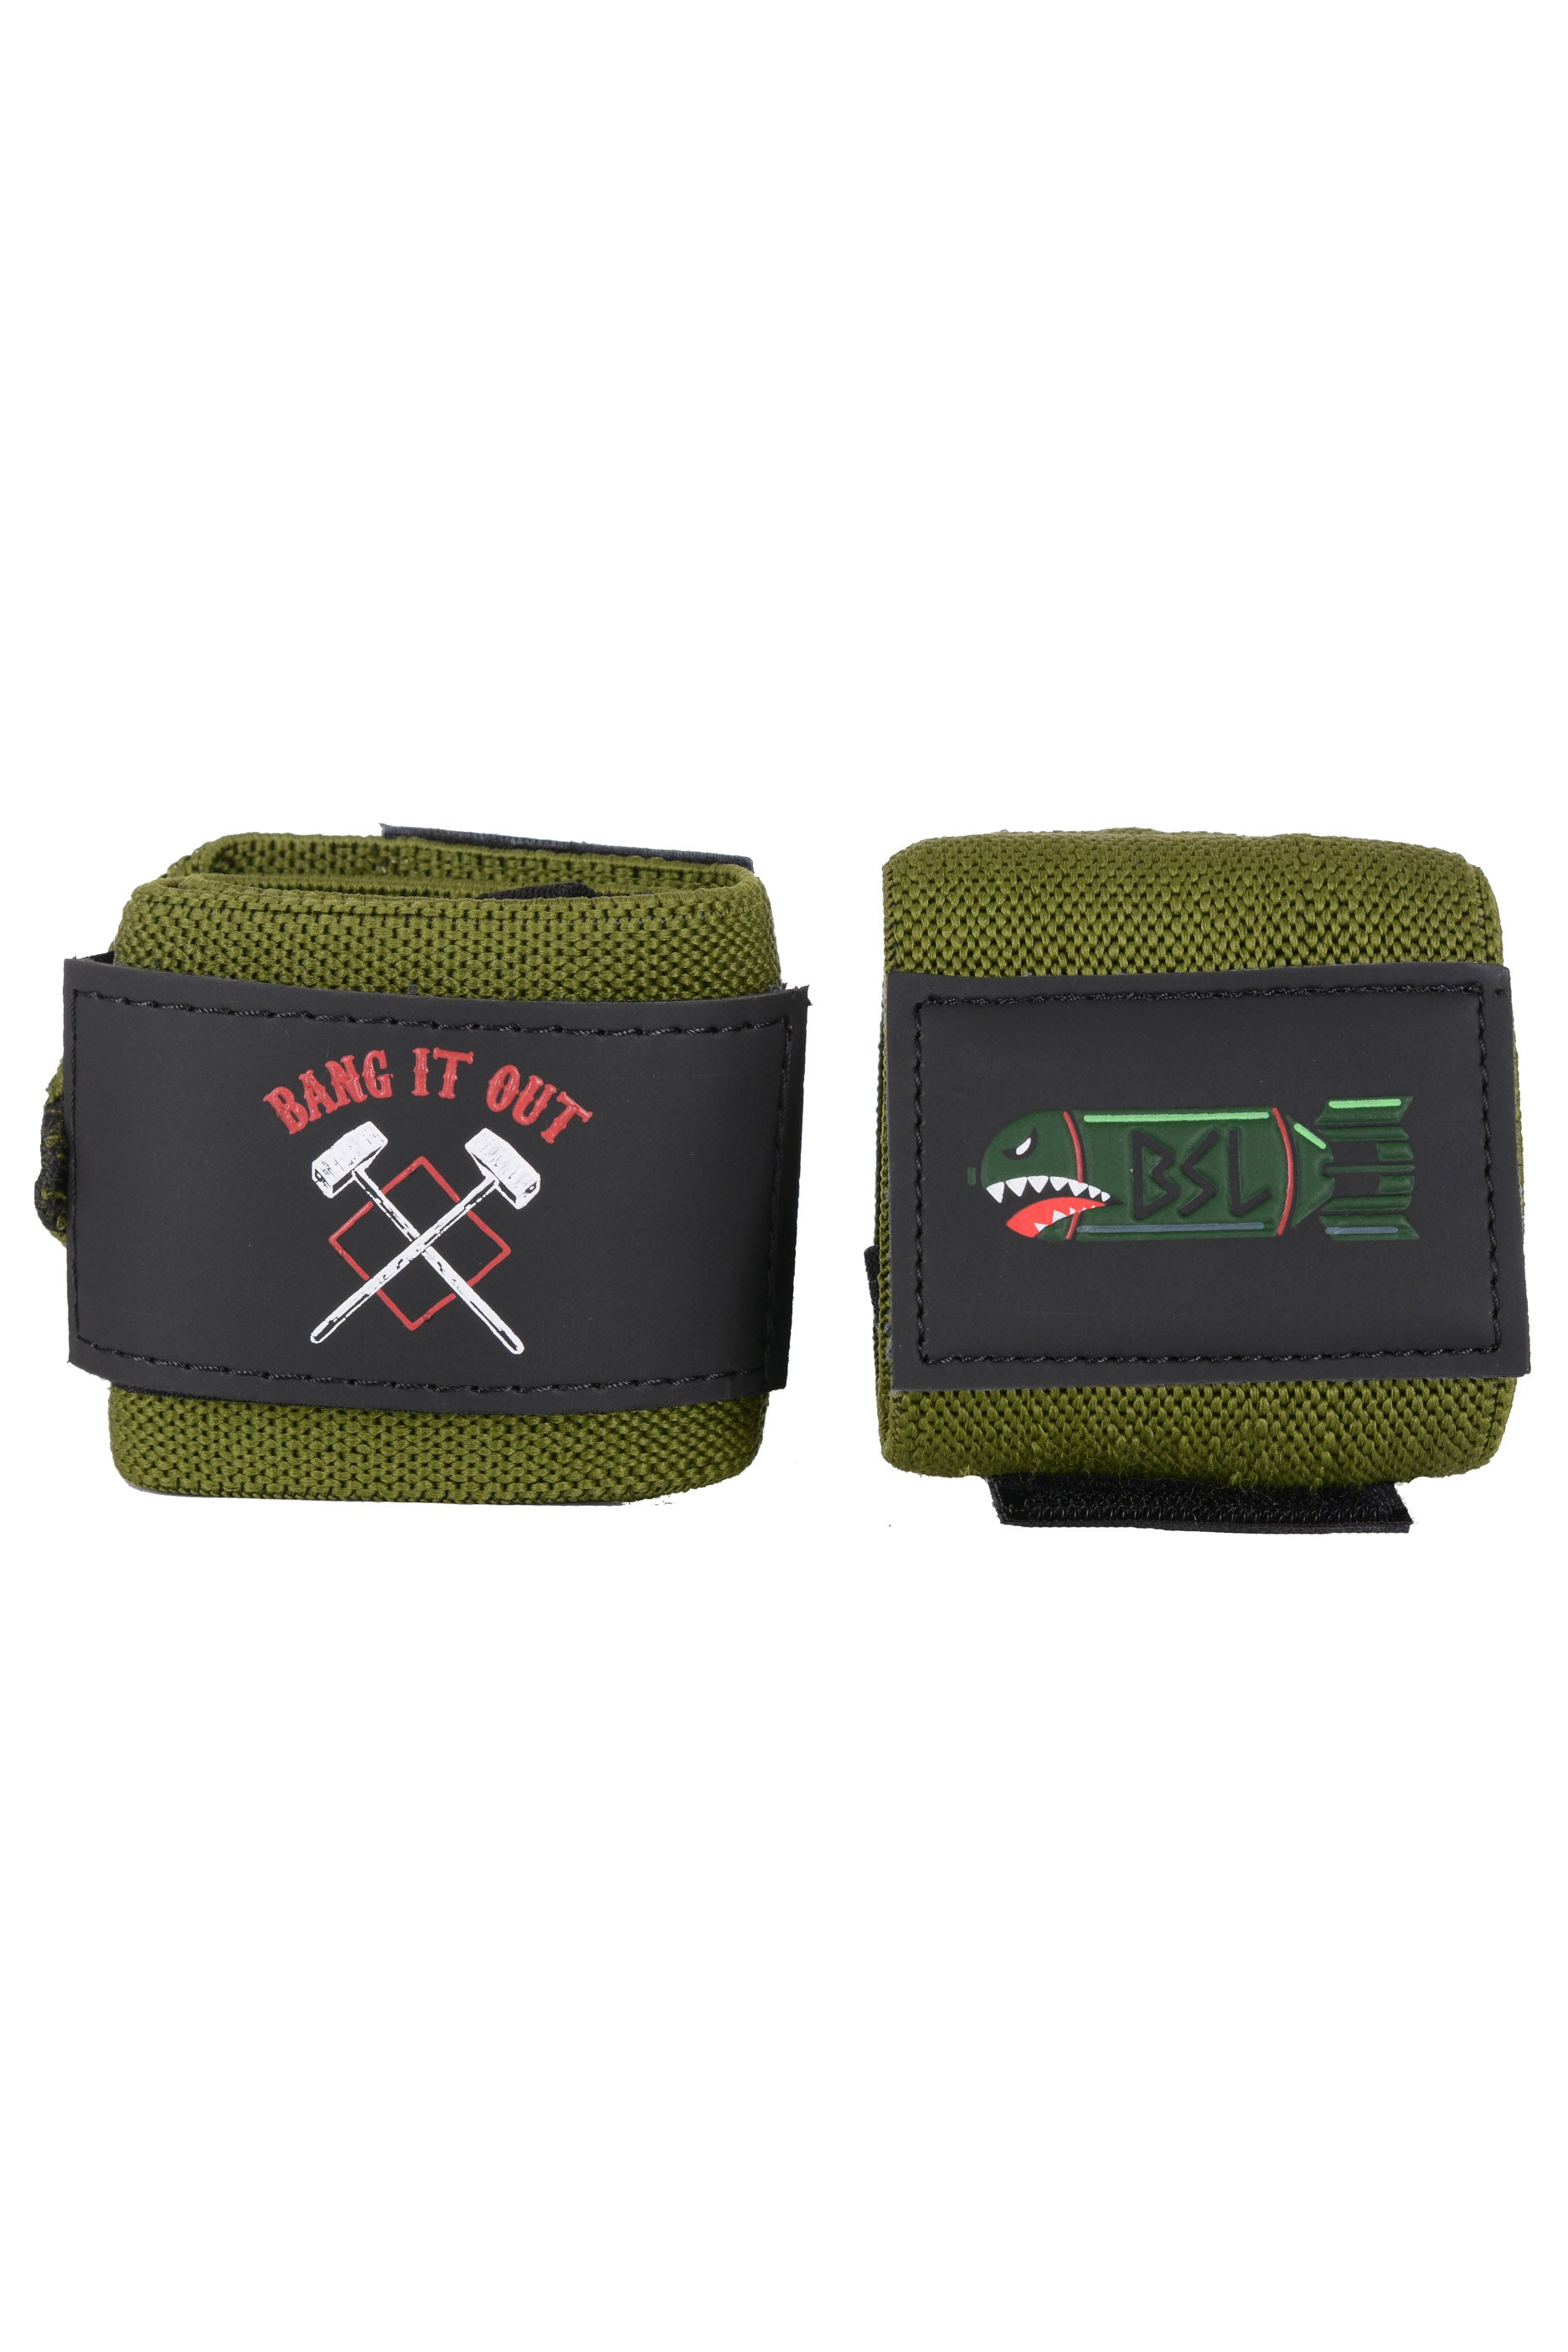 "BSL Bang it Out Wrist Wraps 18""- Olive"